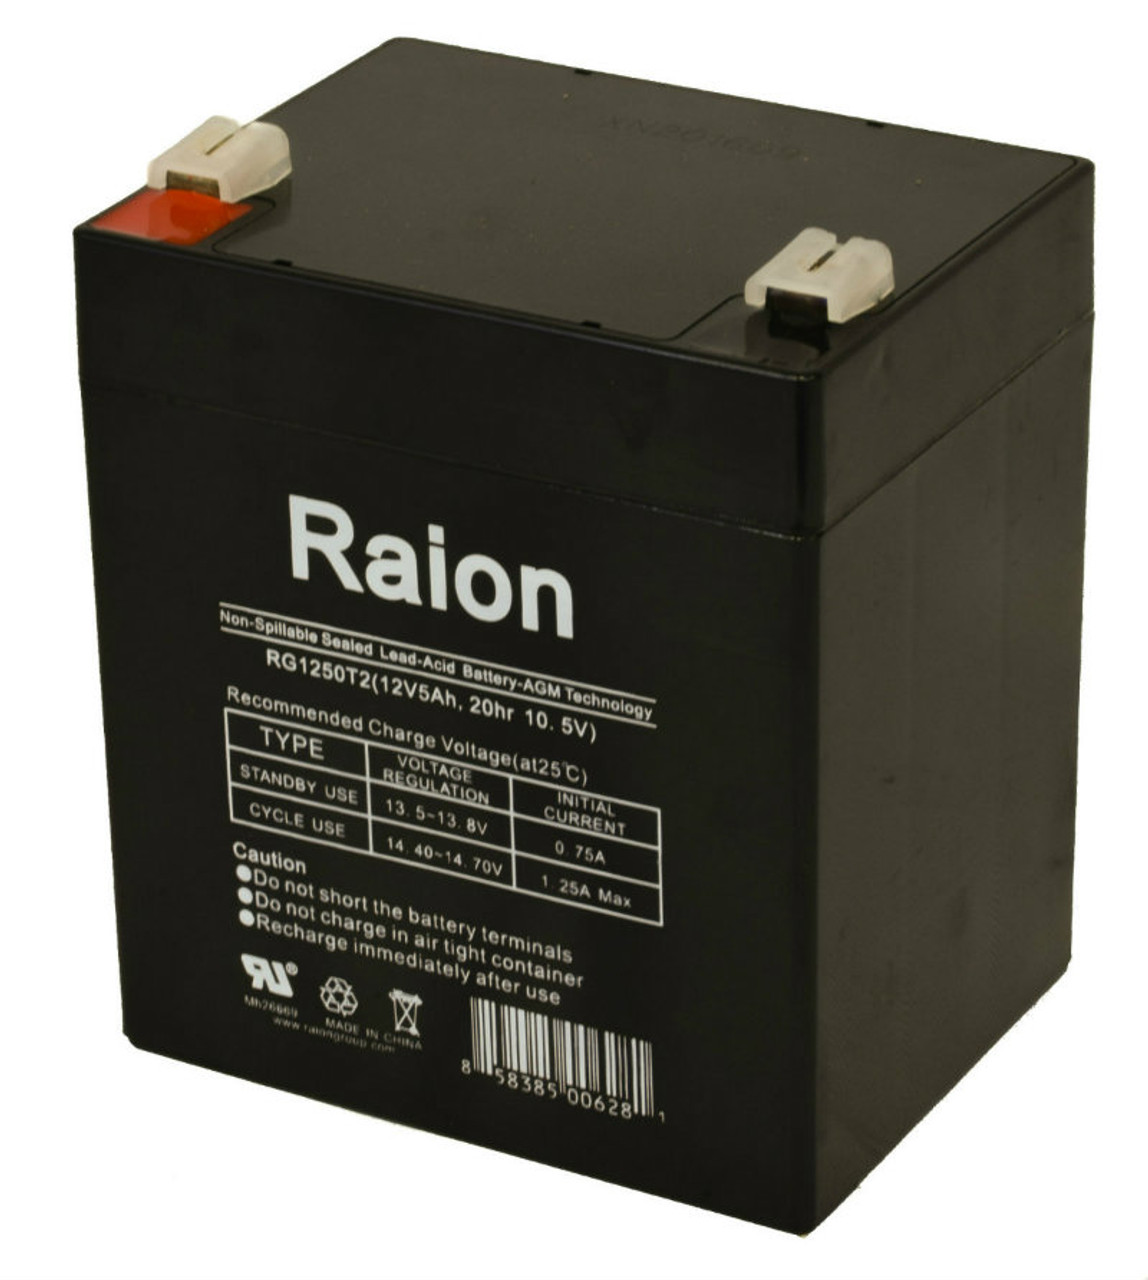 Raion Power RG1250T1 Replacement Battery for Jasco Battery RB1250